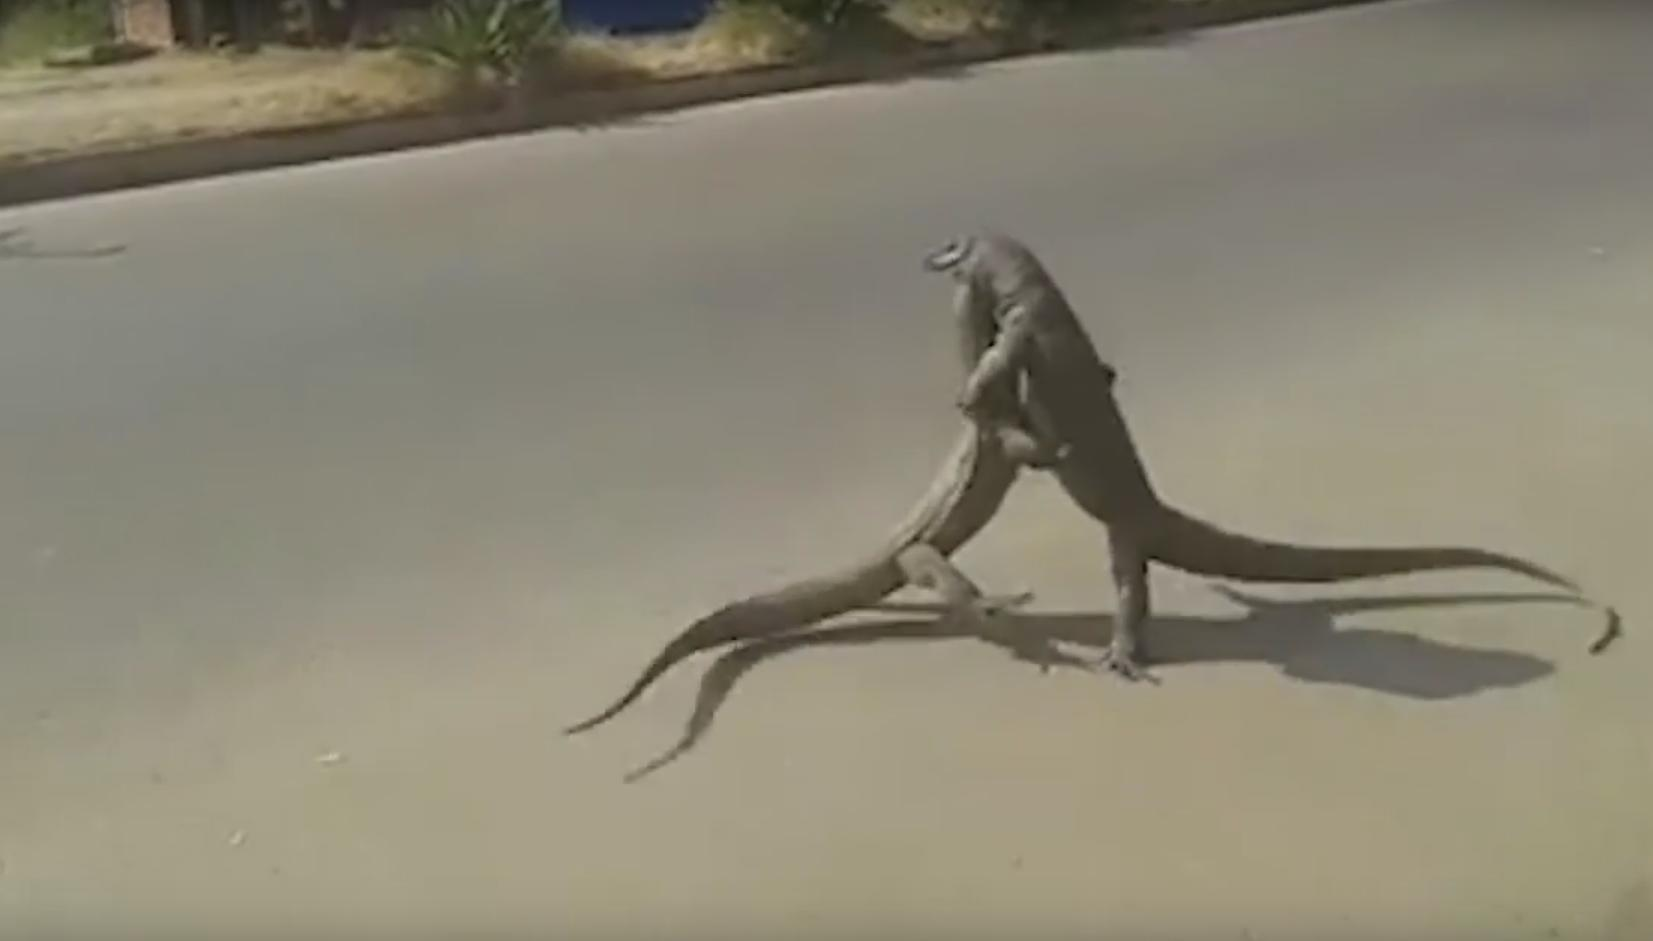 Hilarious Commentary About Two Giant Lizards Fighting